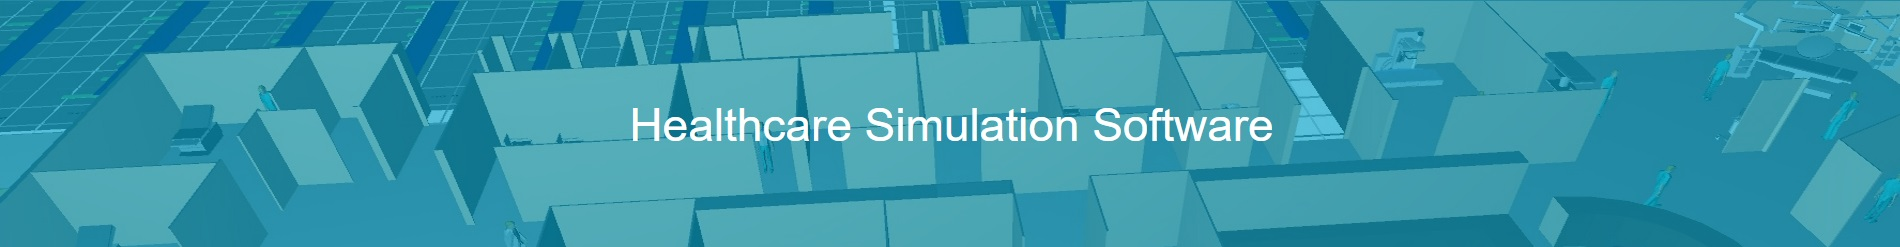 healthcare simulation - healthcare simulation software